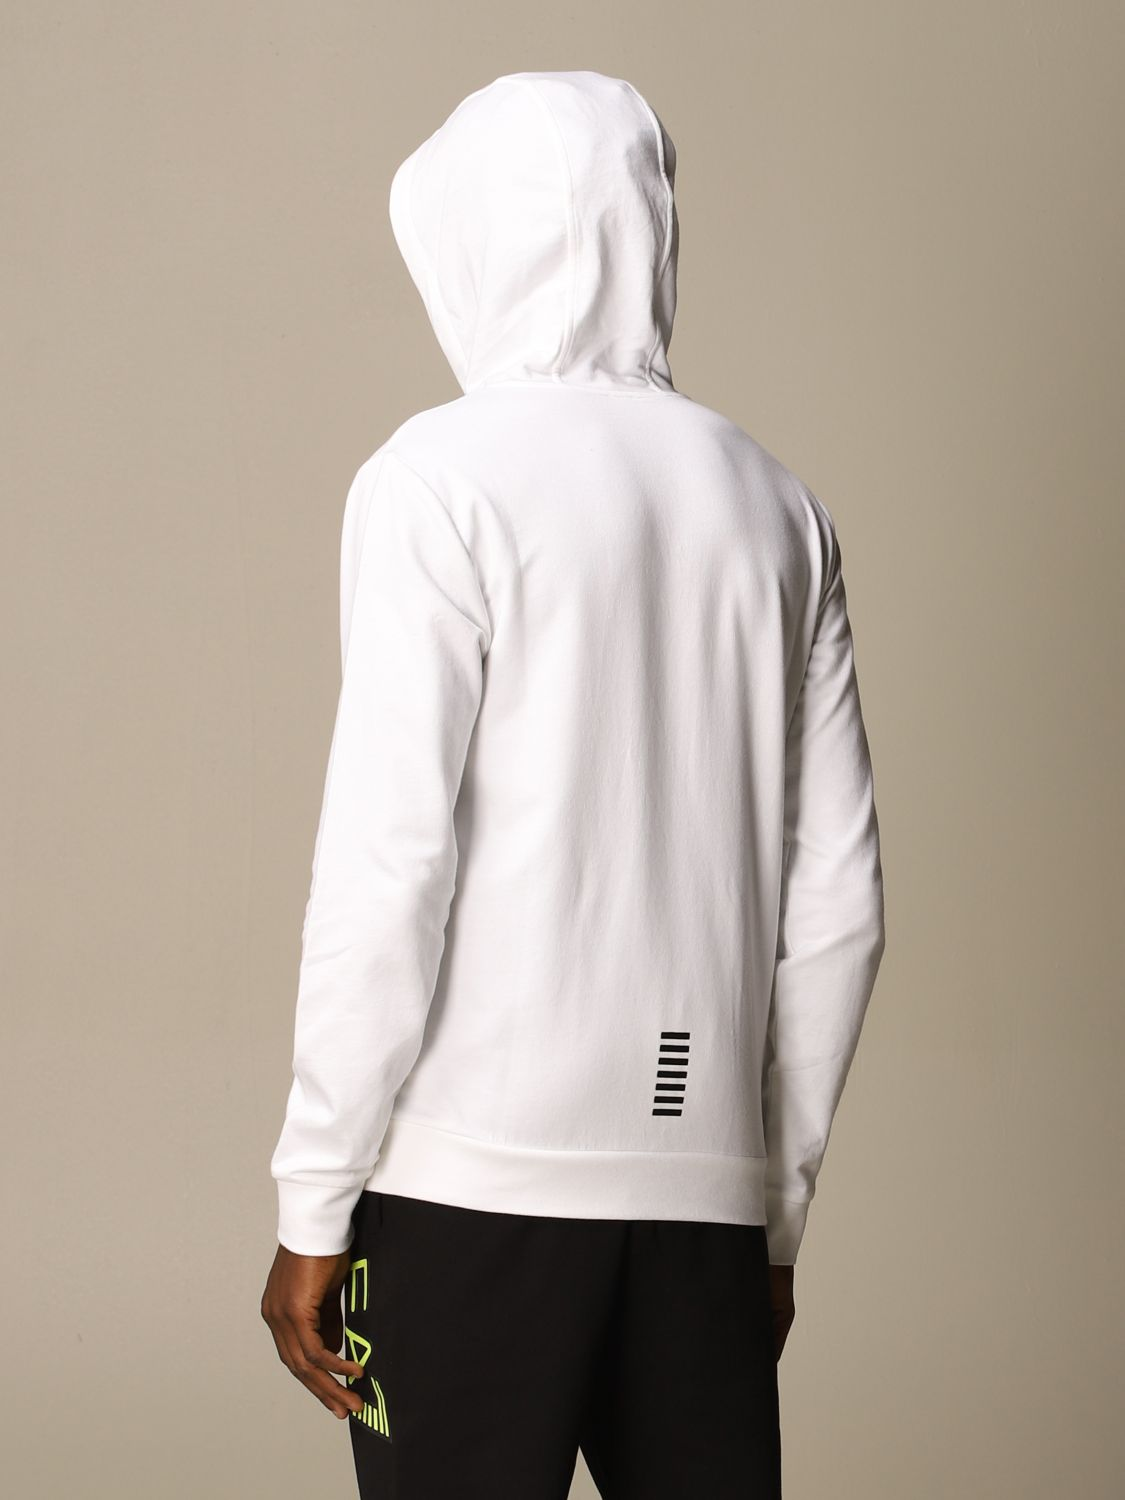 Sweatshirt Ea7: Sweatshirt men Ea7 white 3